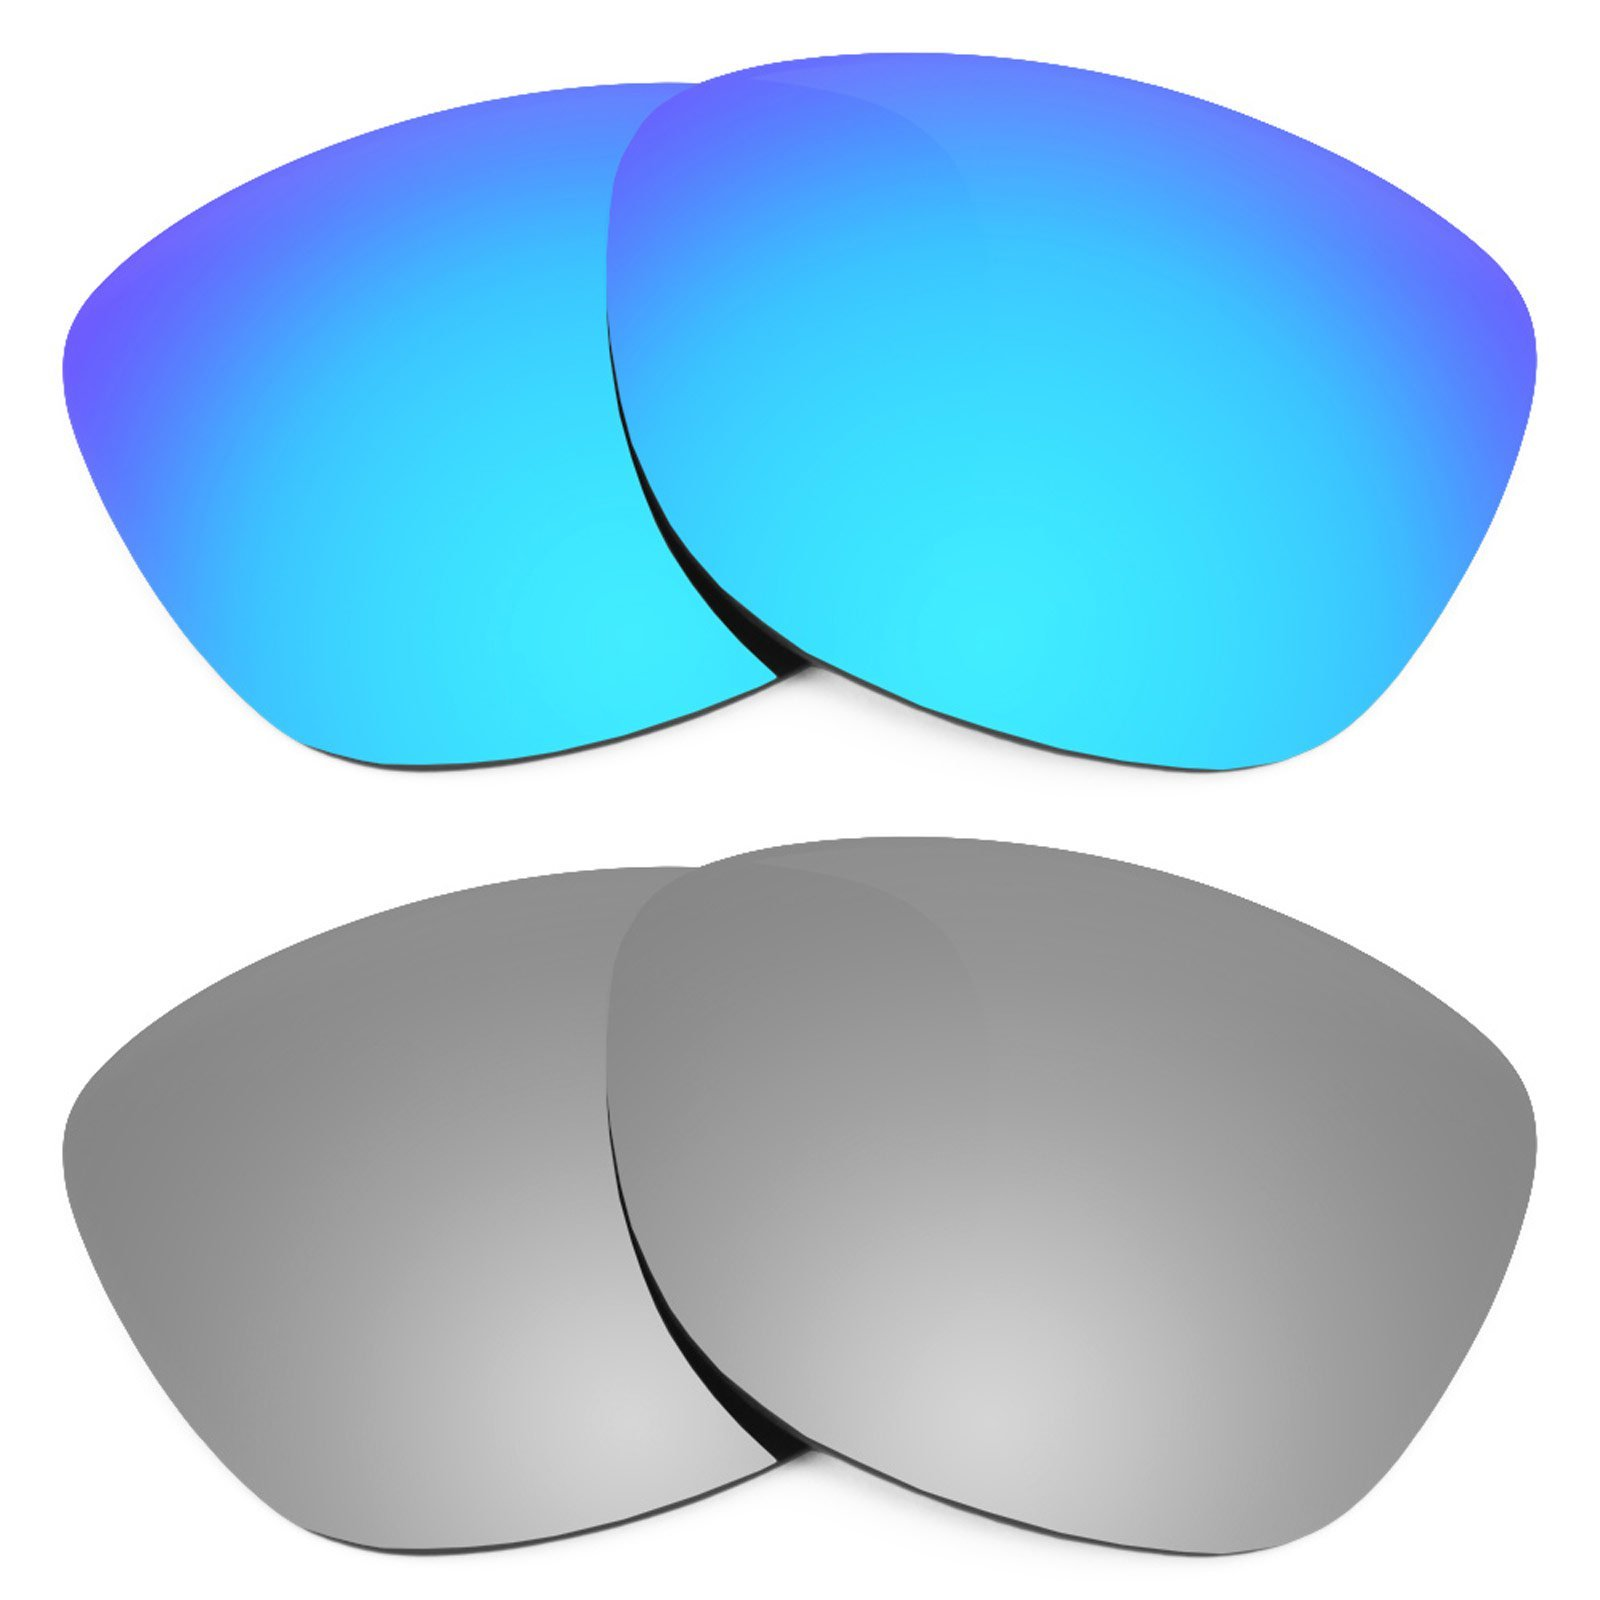 Revant Replacement Lenses for Oakley Frogskins 2 Pair Combo Pack K004 by Revant (Image #2)